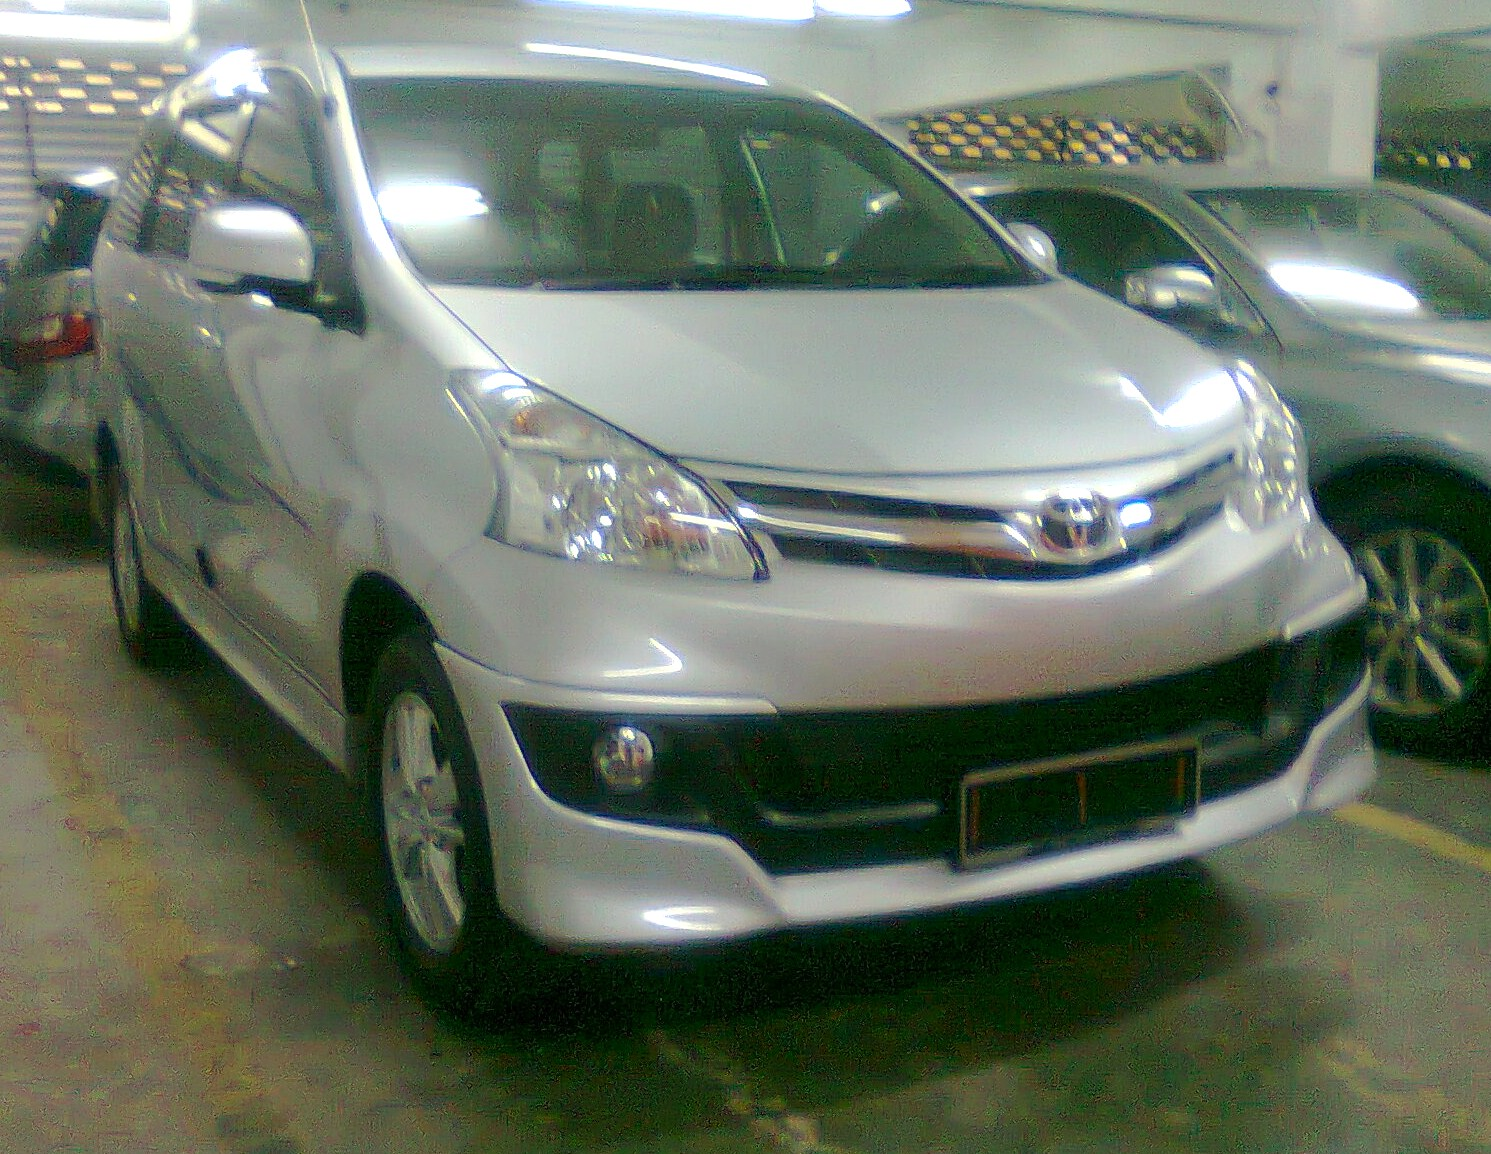 grand new avanza silver metallic vs ertiga 2013 brand toyota 1 3 and 5 vvt i toyotanewcars